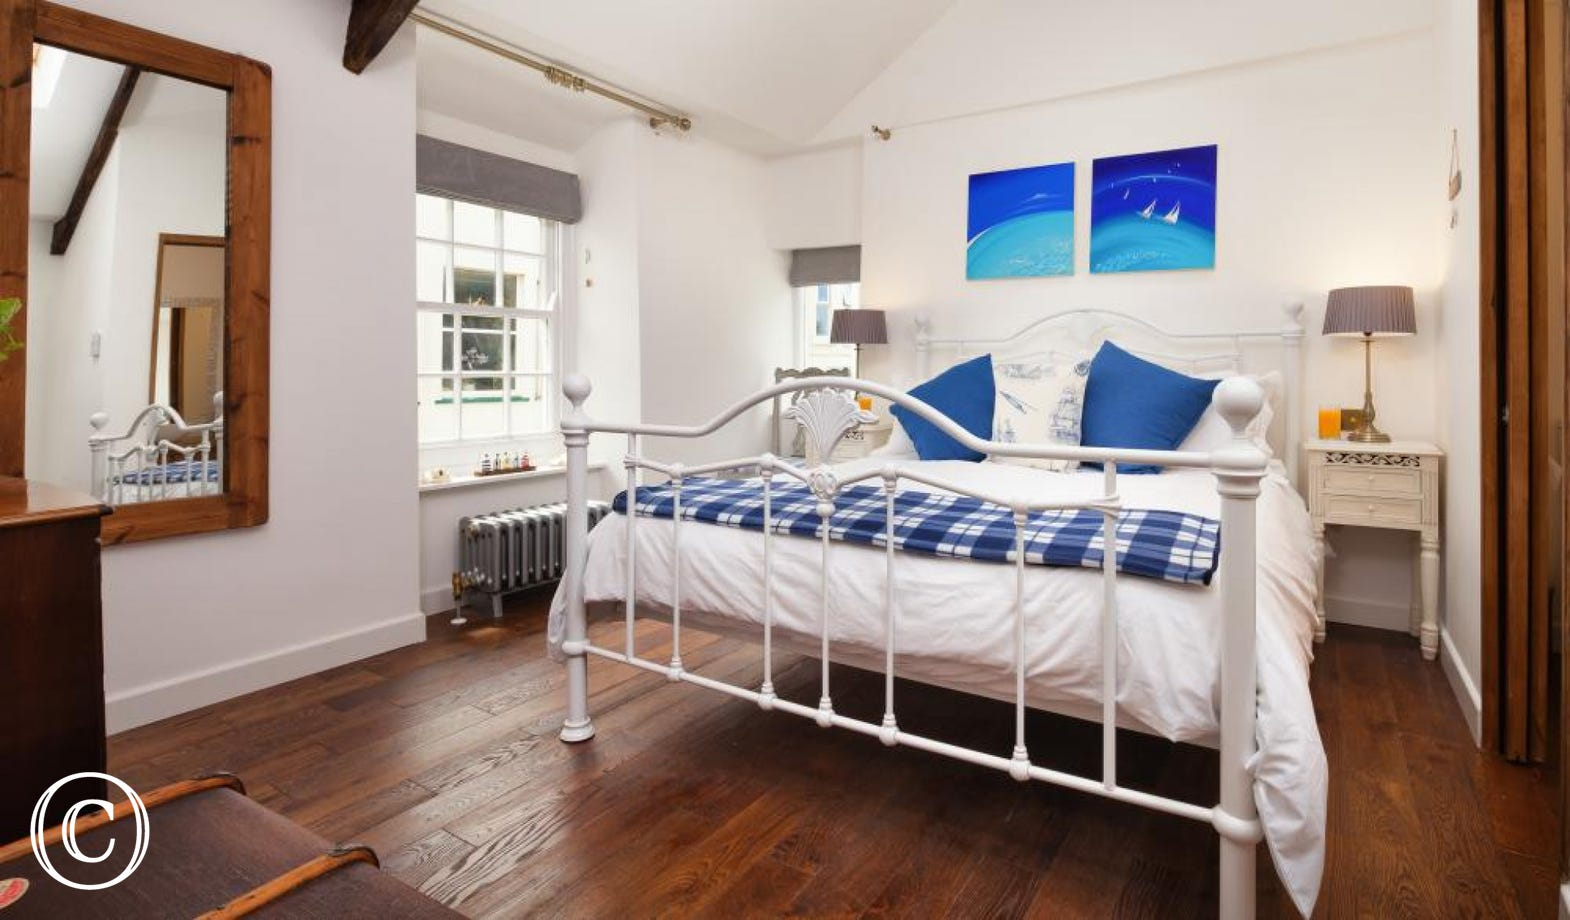 Master kingsize bedroom with en-suite WC & handbasin. Lofted ceilings with Velux windows gives a spacious airy ambience.